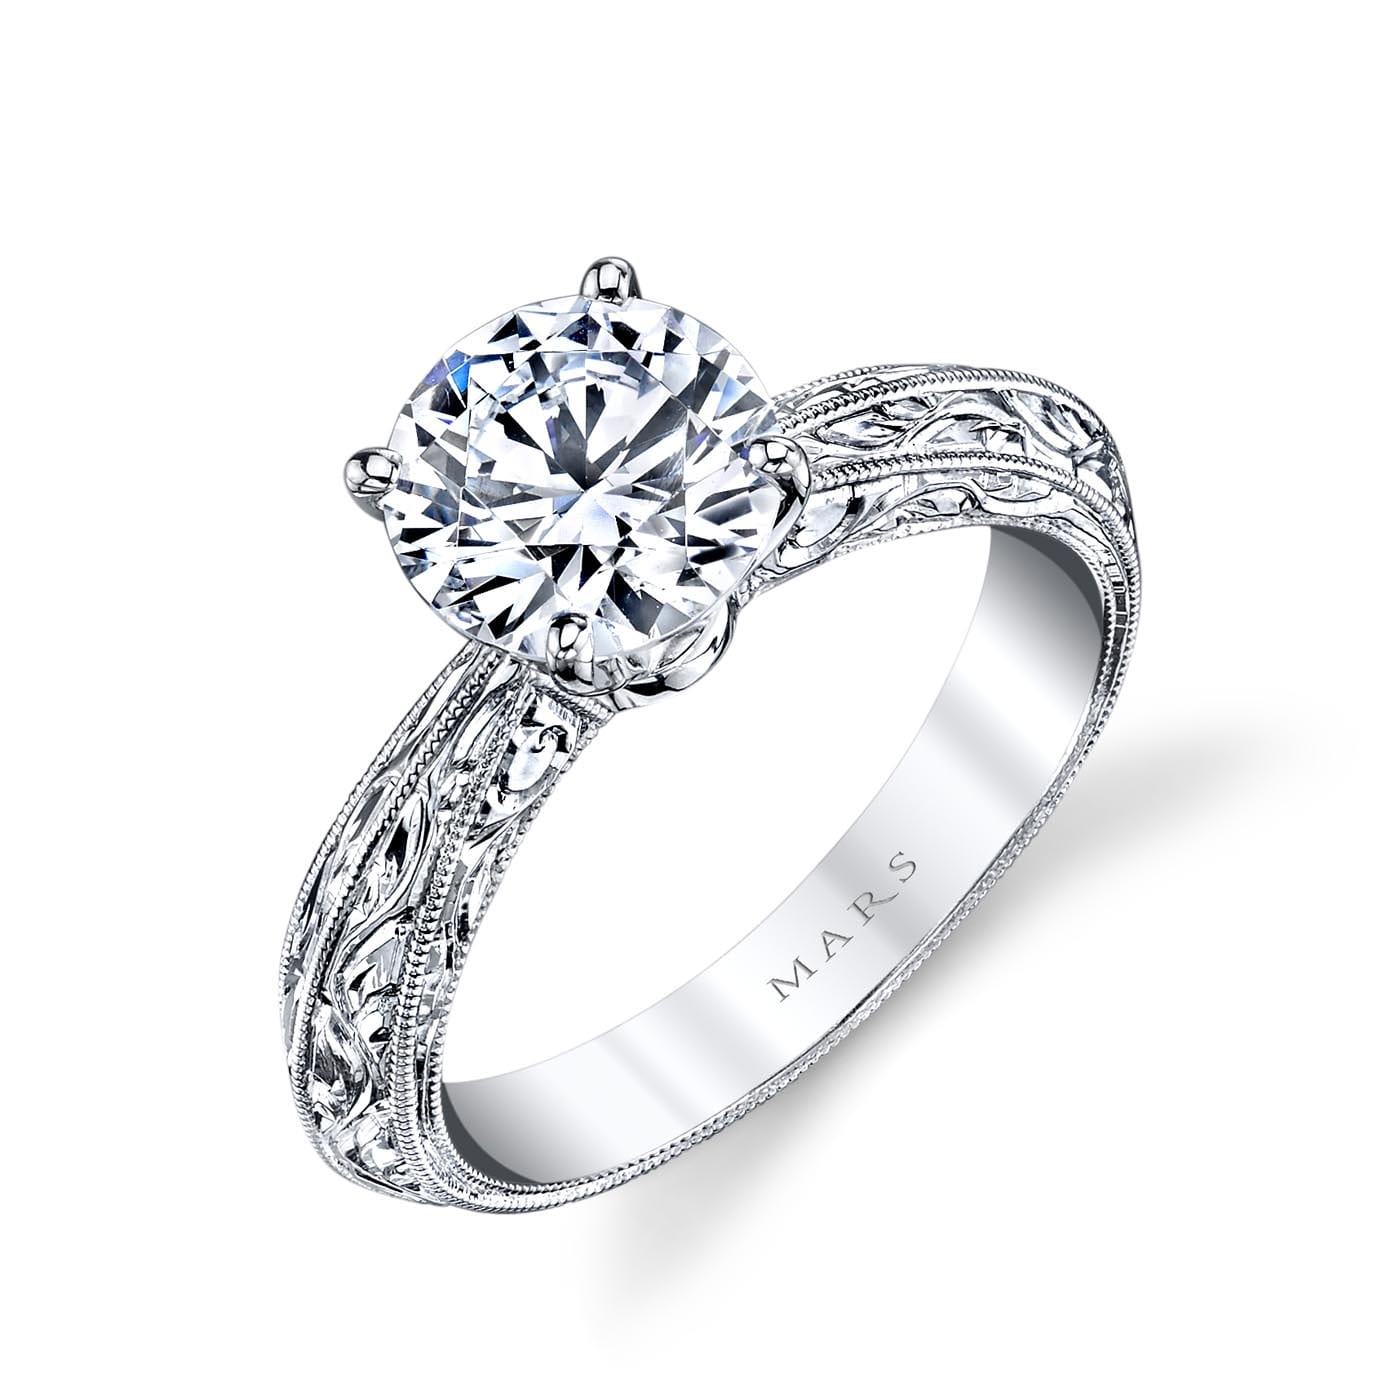 Solitaire Engagement RingStyle #: MARS 13912HE